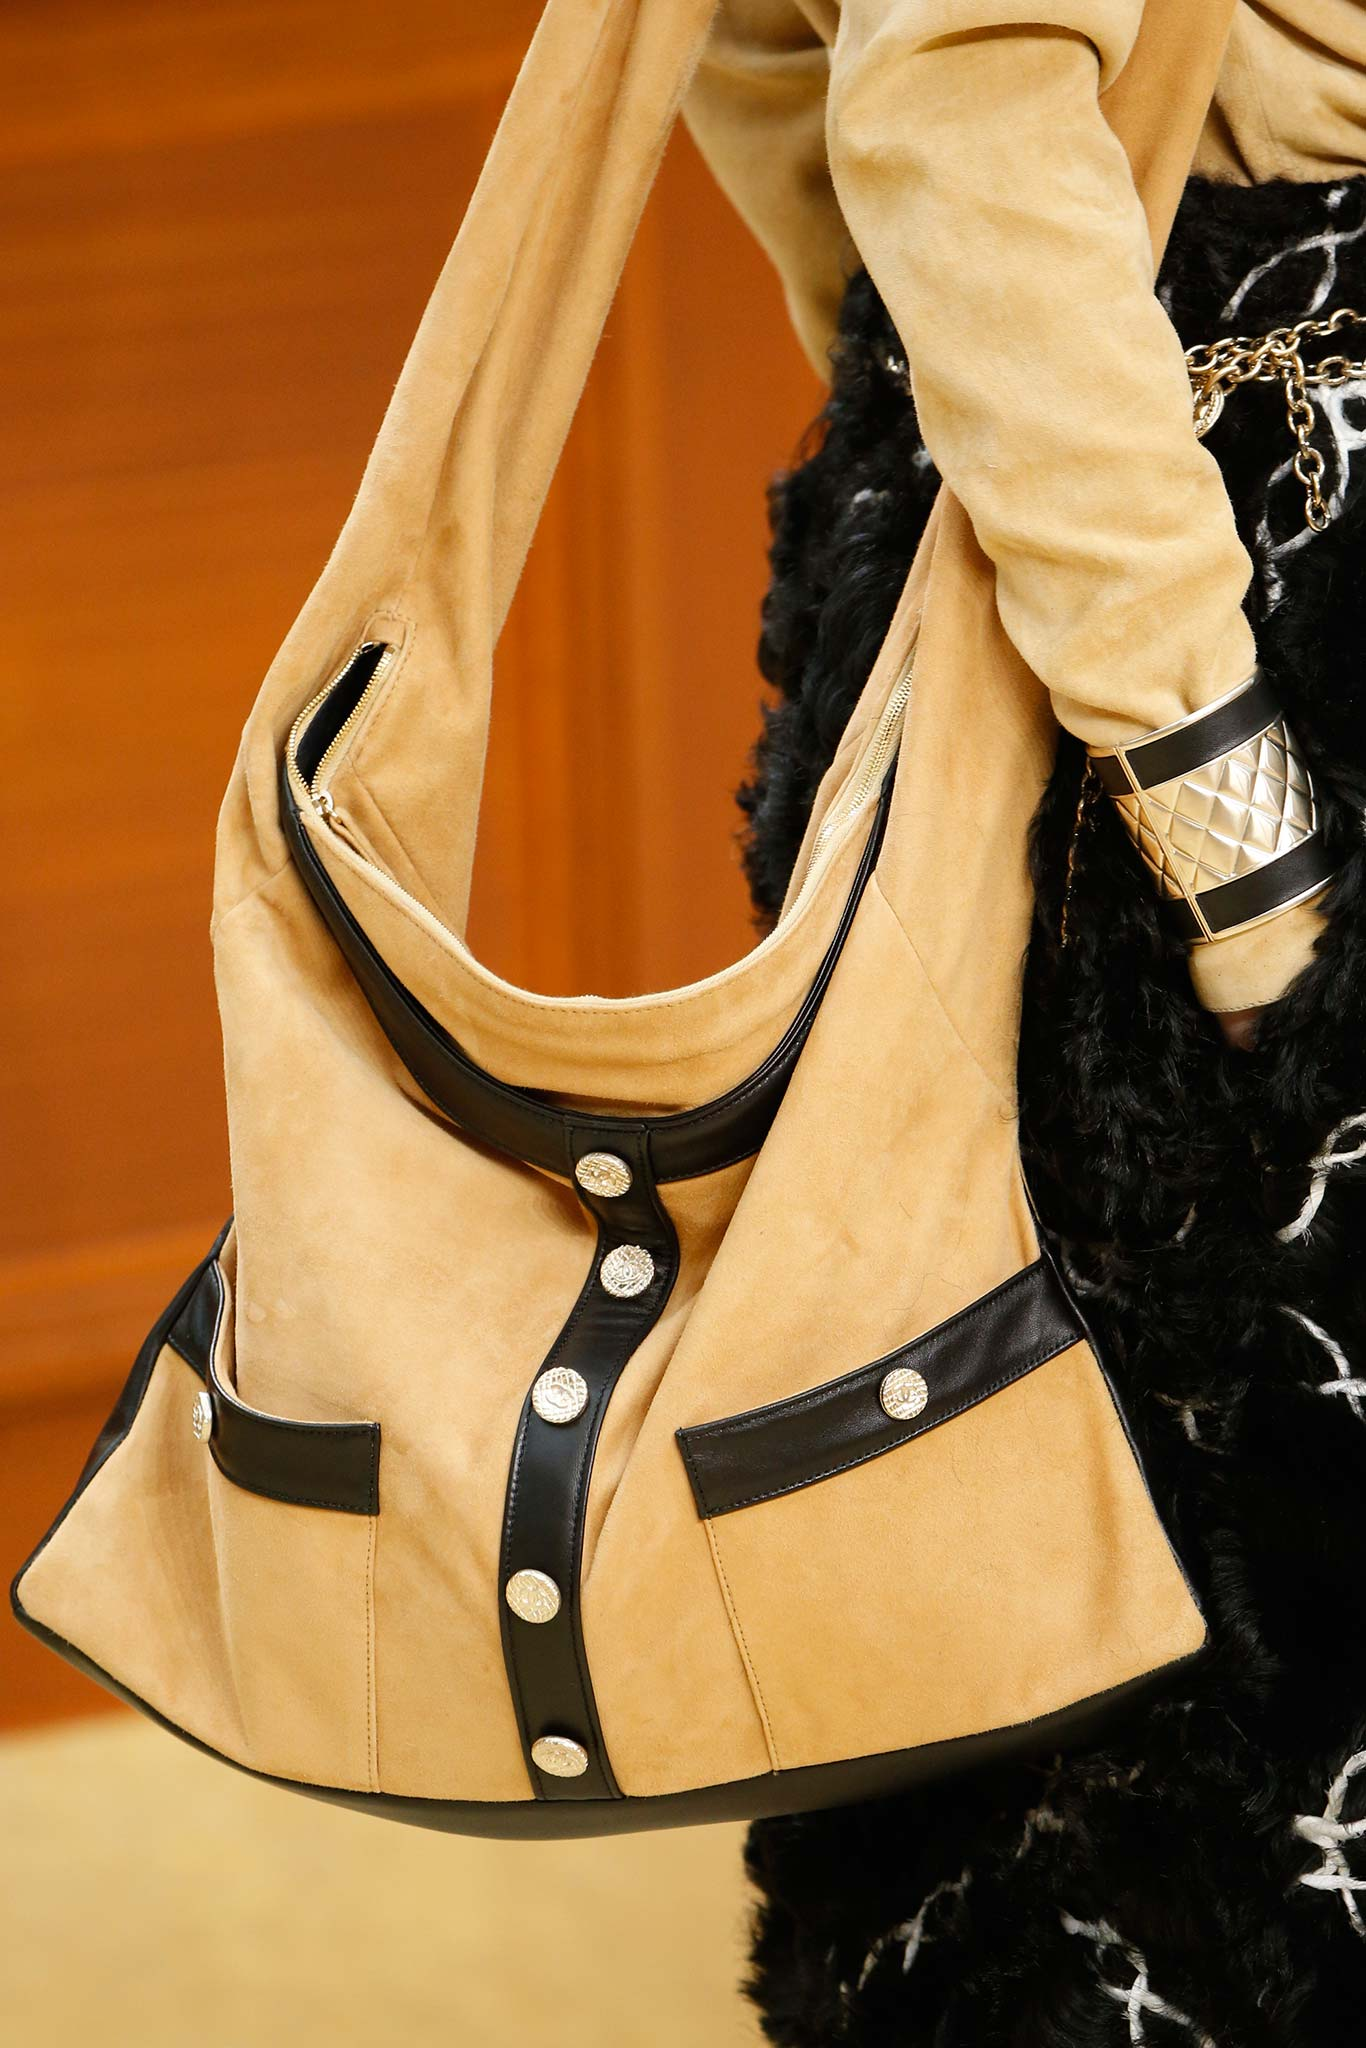 Chanel Fallwinter 2015 Runway Bag Collection Featuring -8726